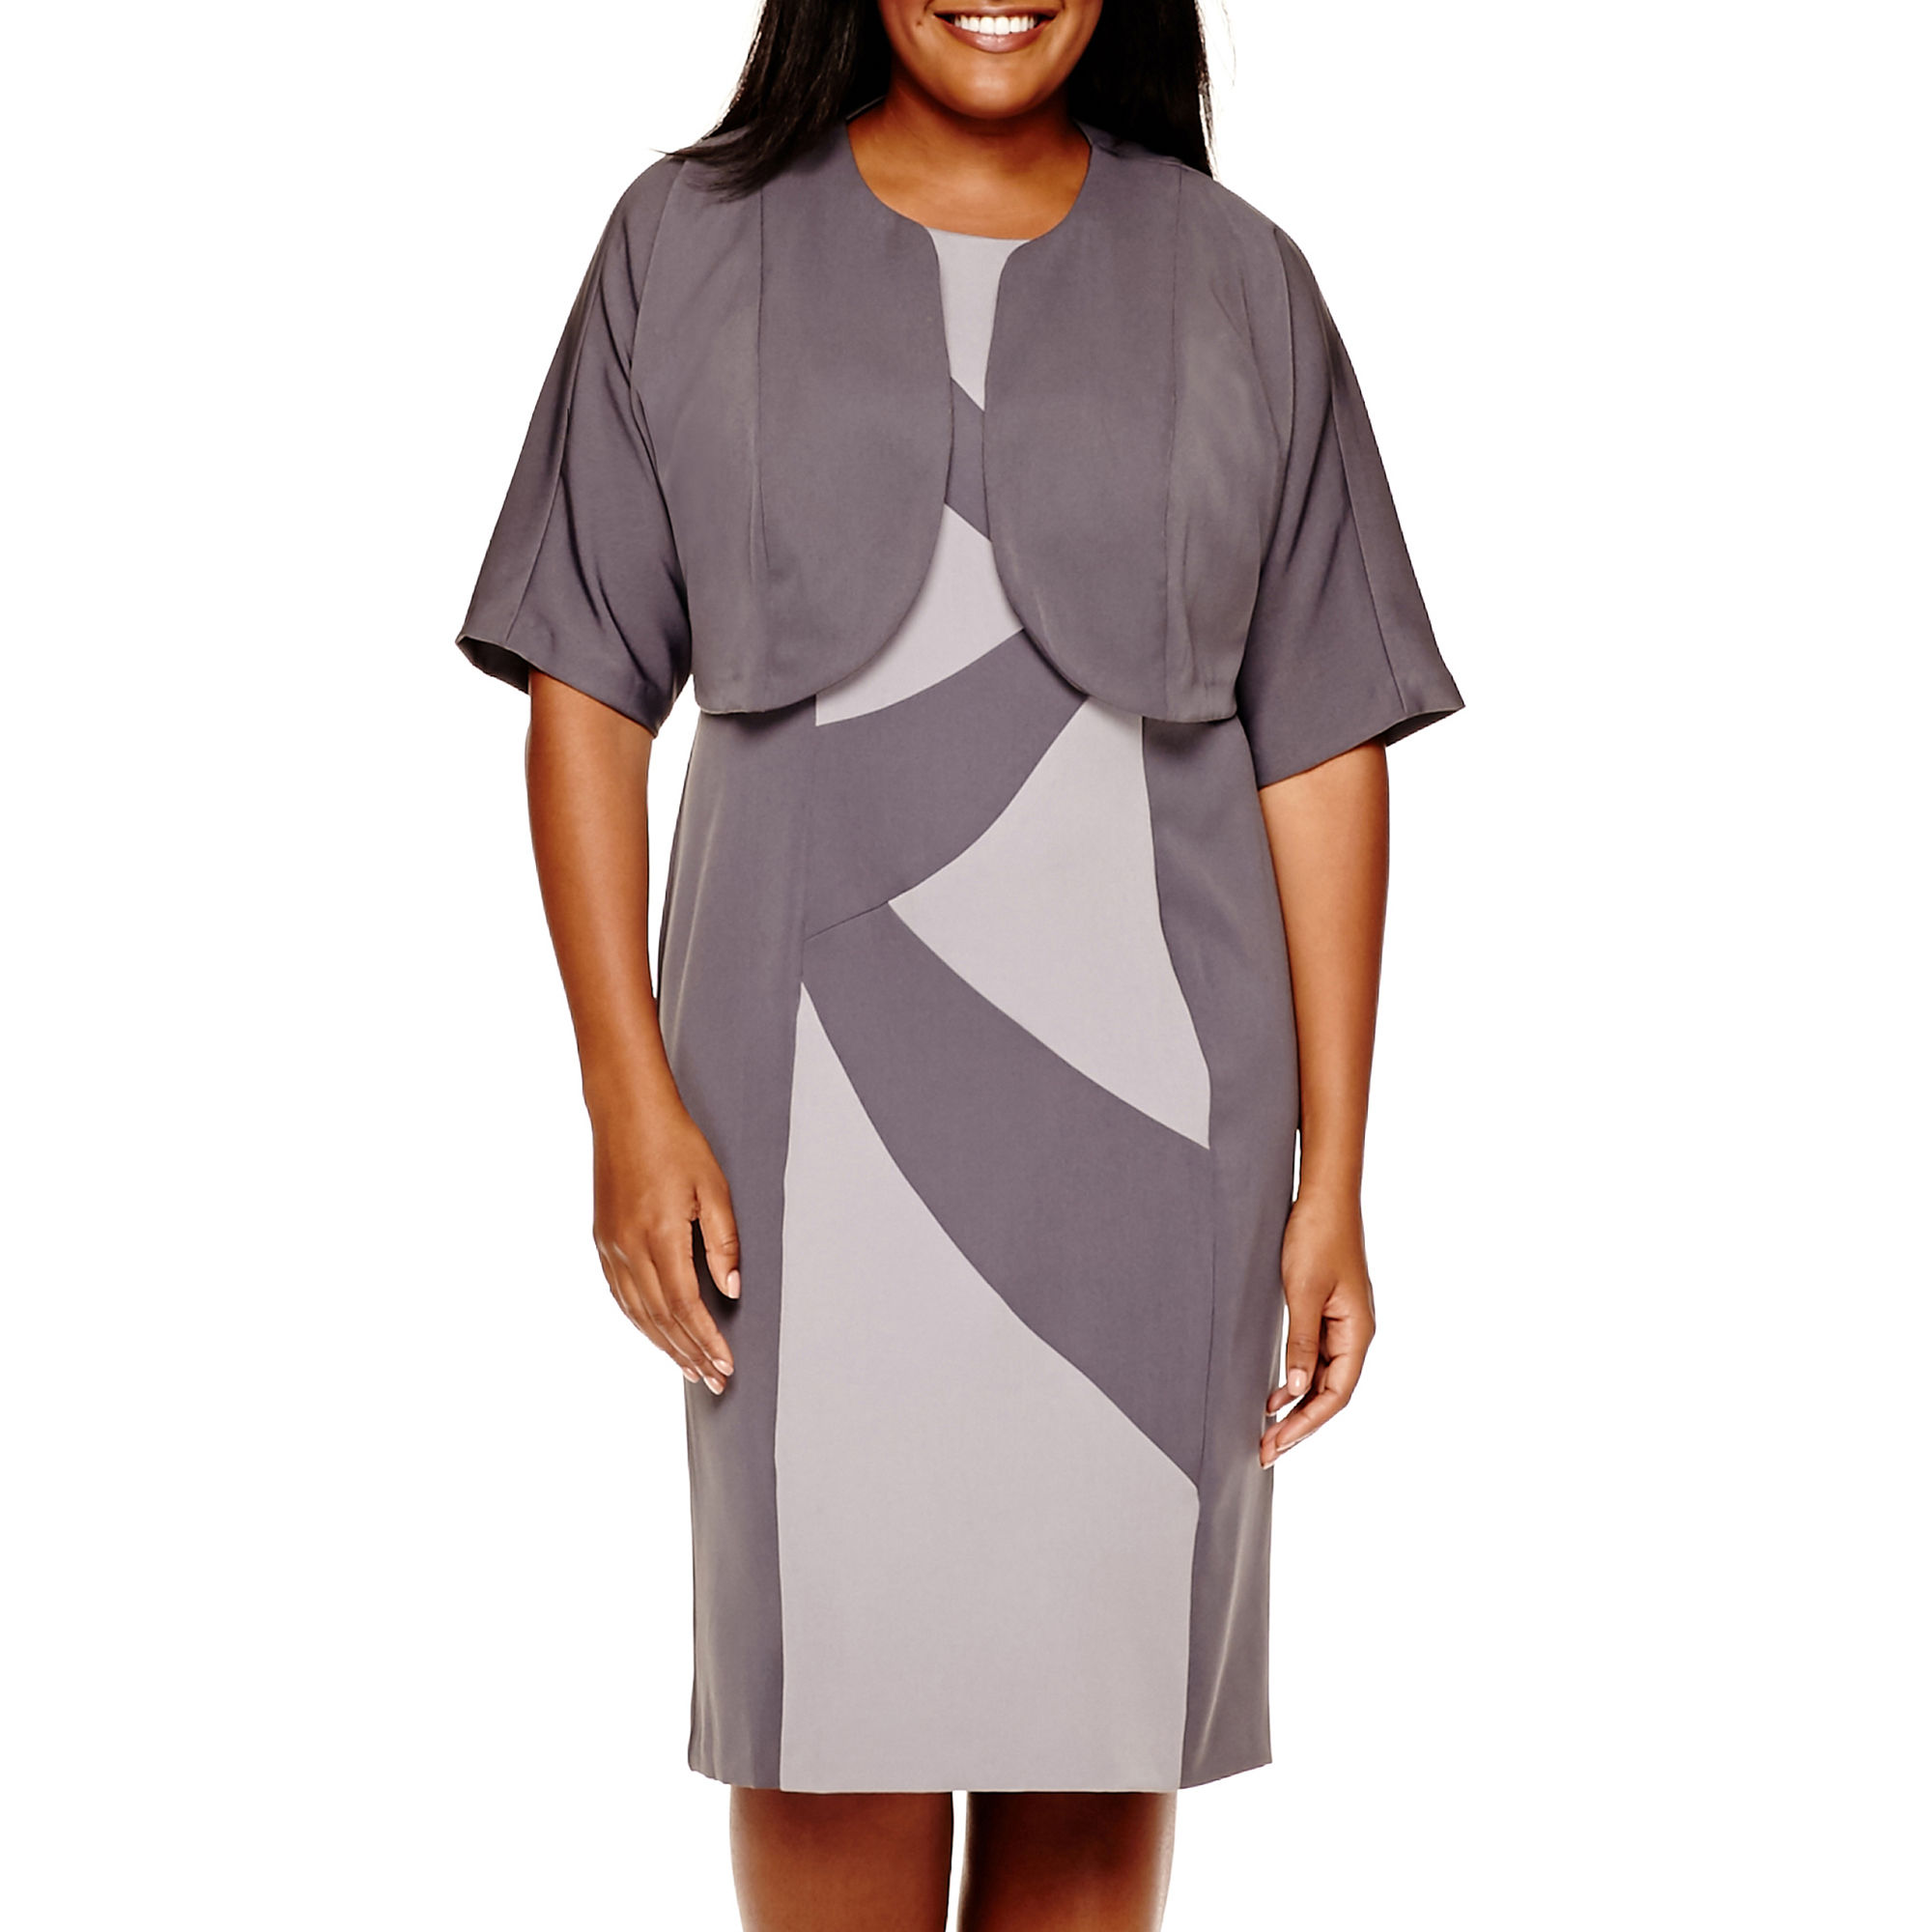 f&f plus length dresses